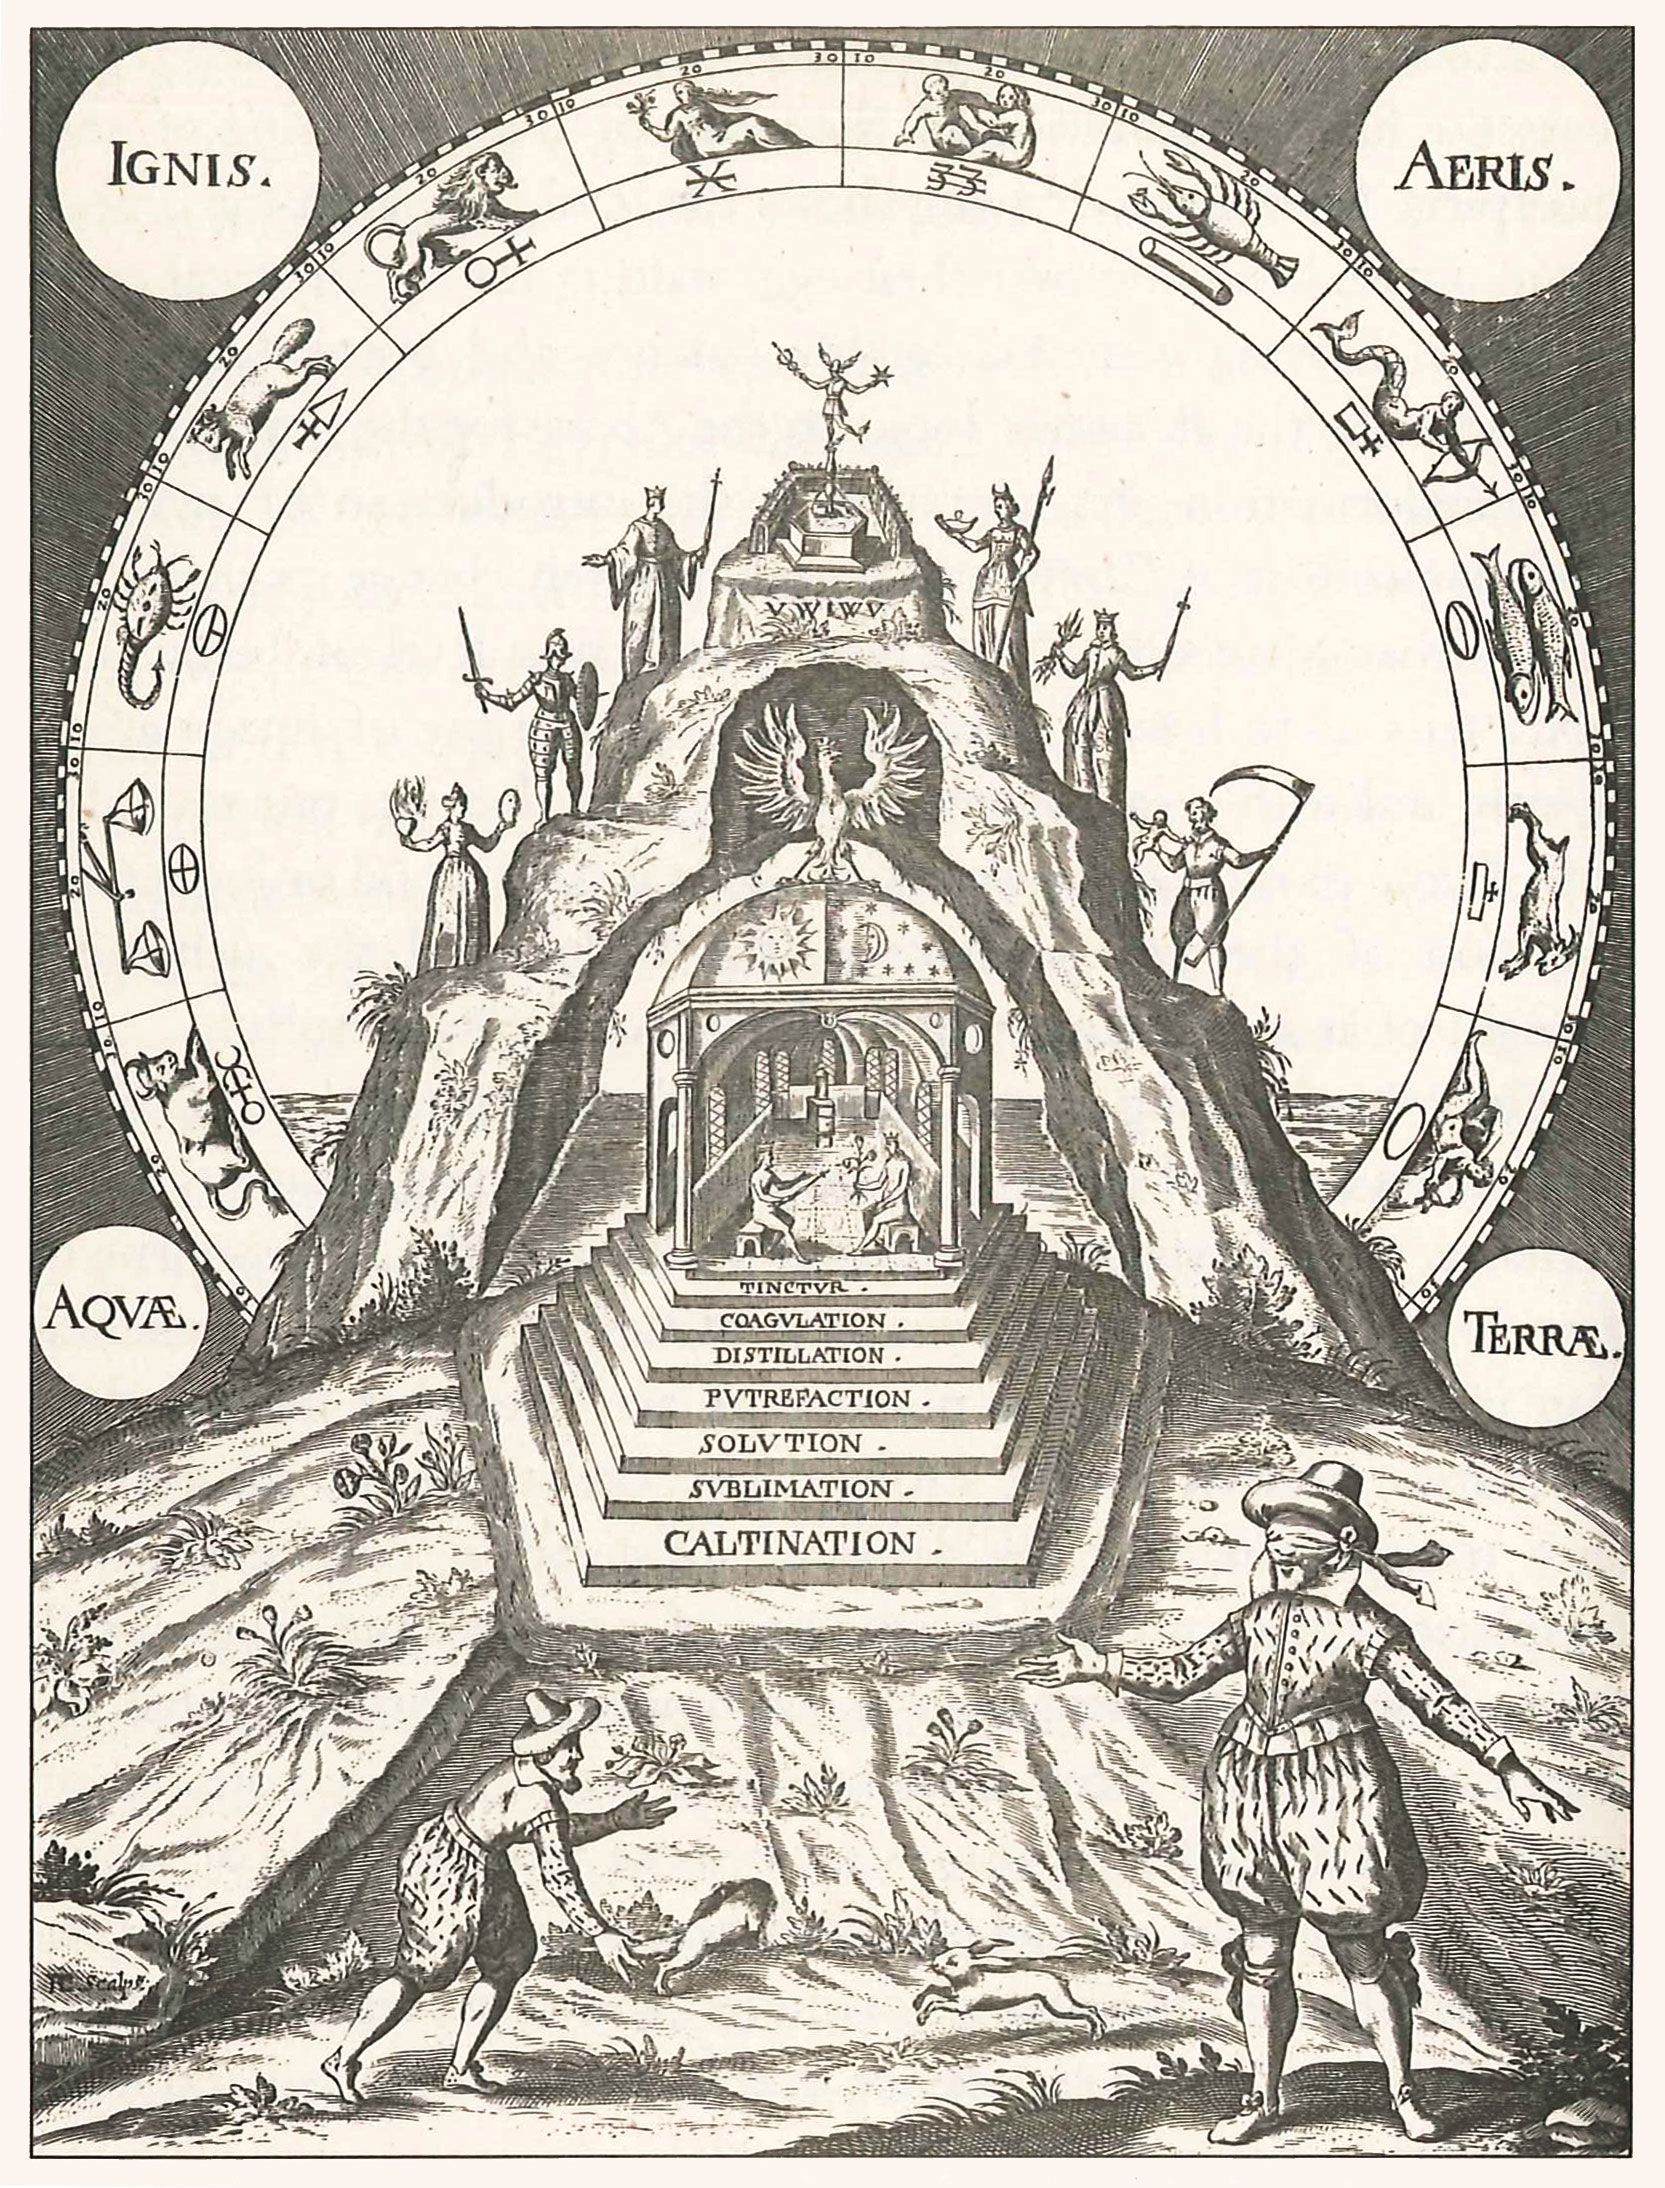 medium resolution of cave of the ancients stefan michelspacher 1616 diagram 3 from cabala spiegel der kunst und natur in alchymia kabbalah mirror of art and nature in